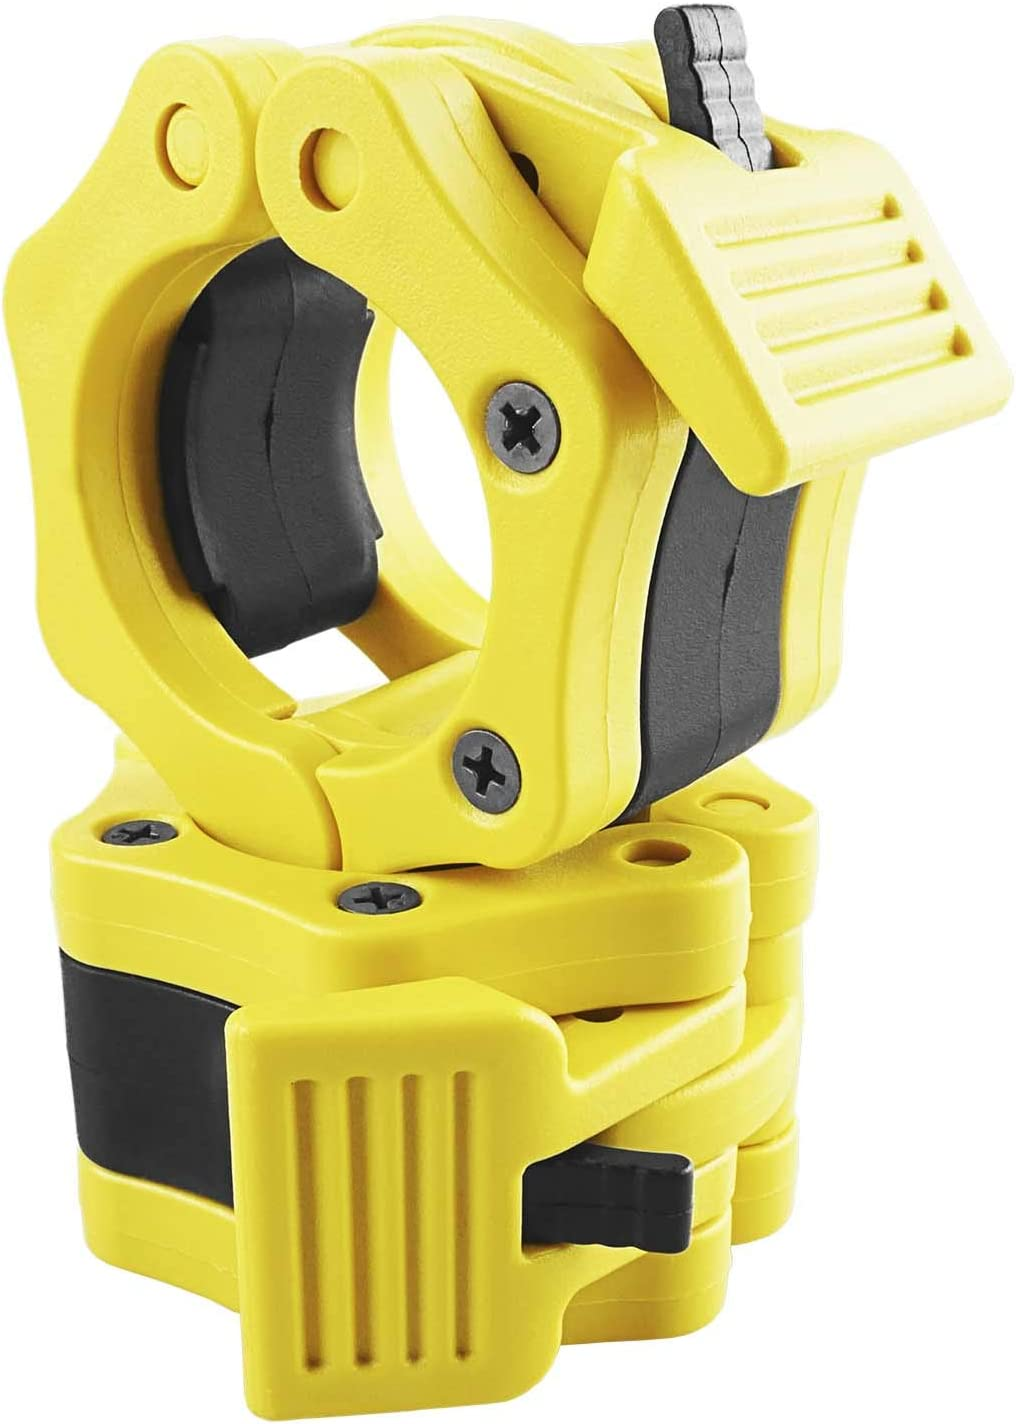 Siudo Olympic Barbell Clamp Pair of Locking 2 Size Exercise Collars for Workout Weightlifting Fitness Training Yellow